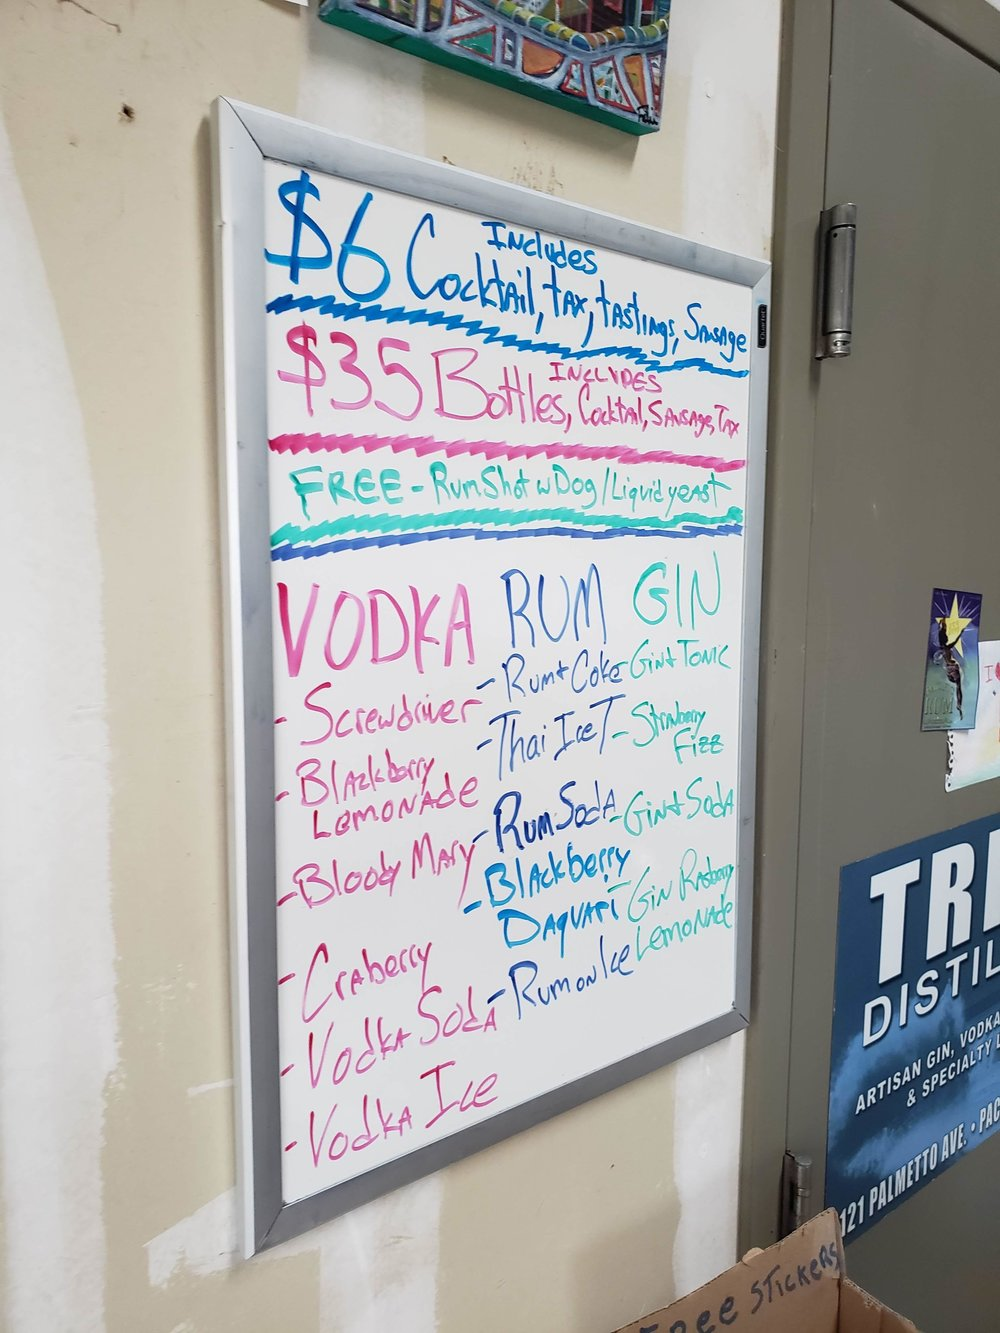 $6: includes choice of cocktail, tax, tastings, and sausage. Free rum shot if you bring your dog.